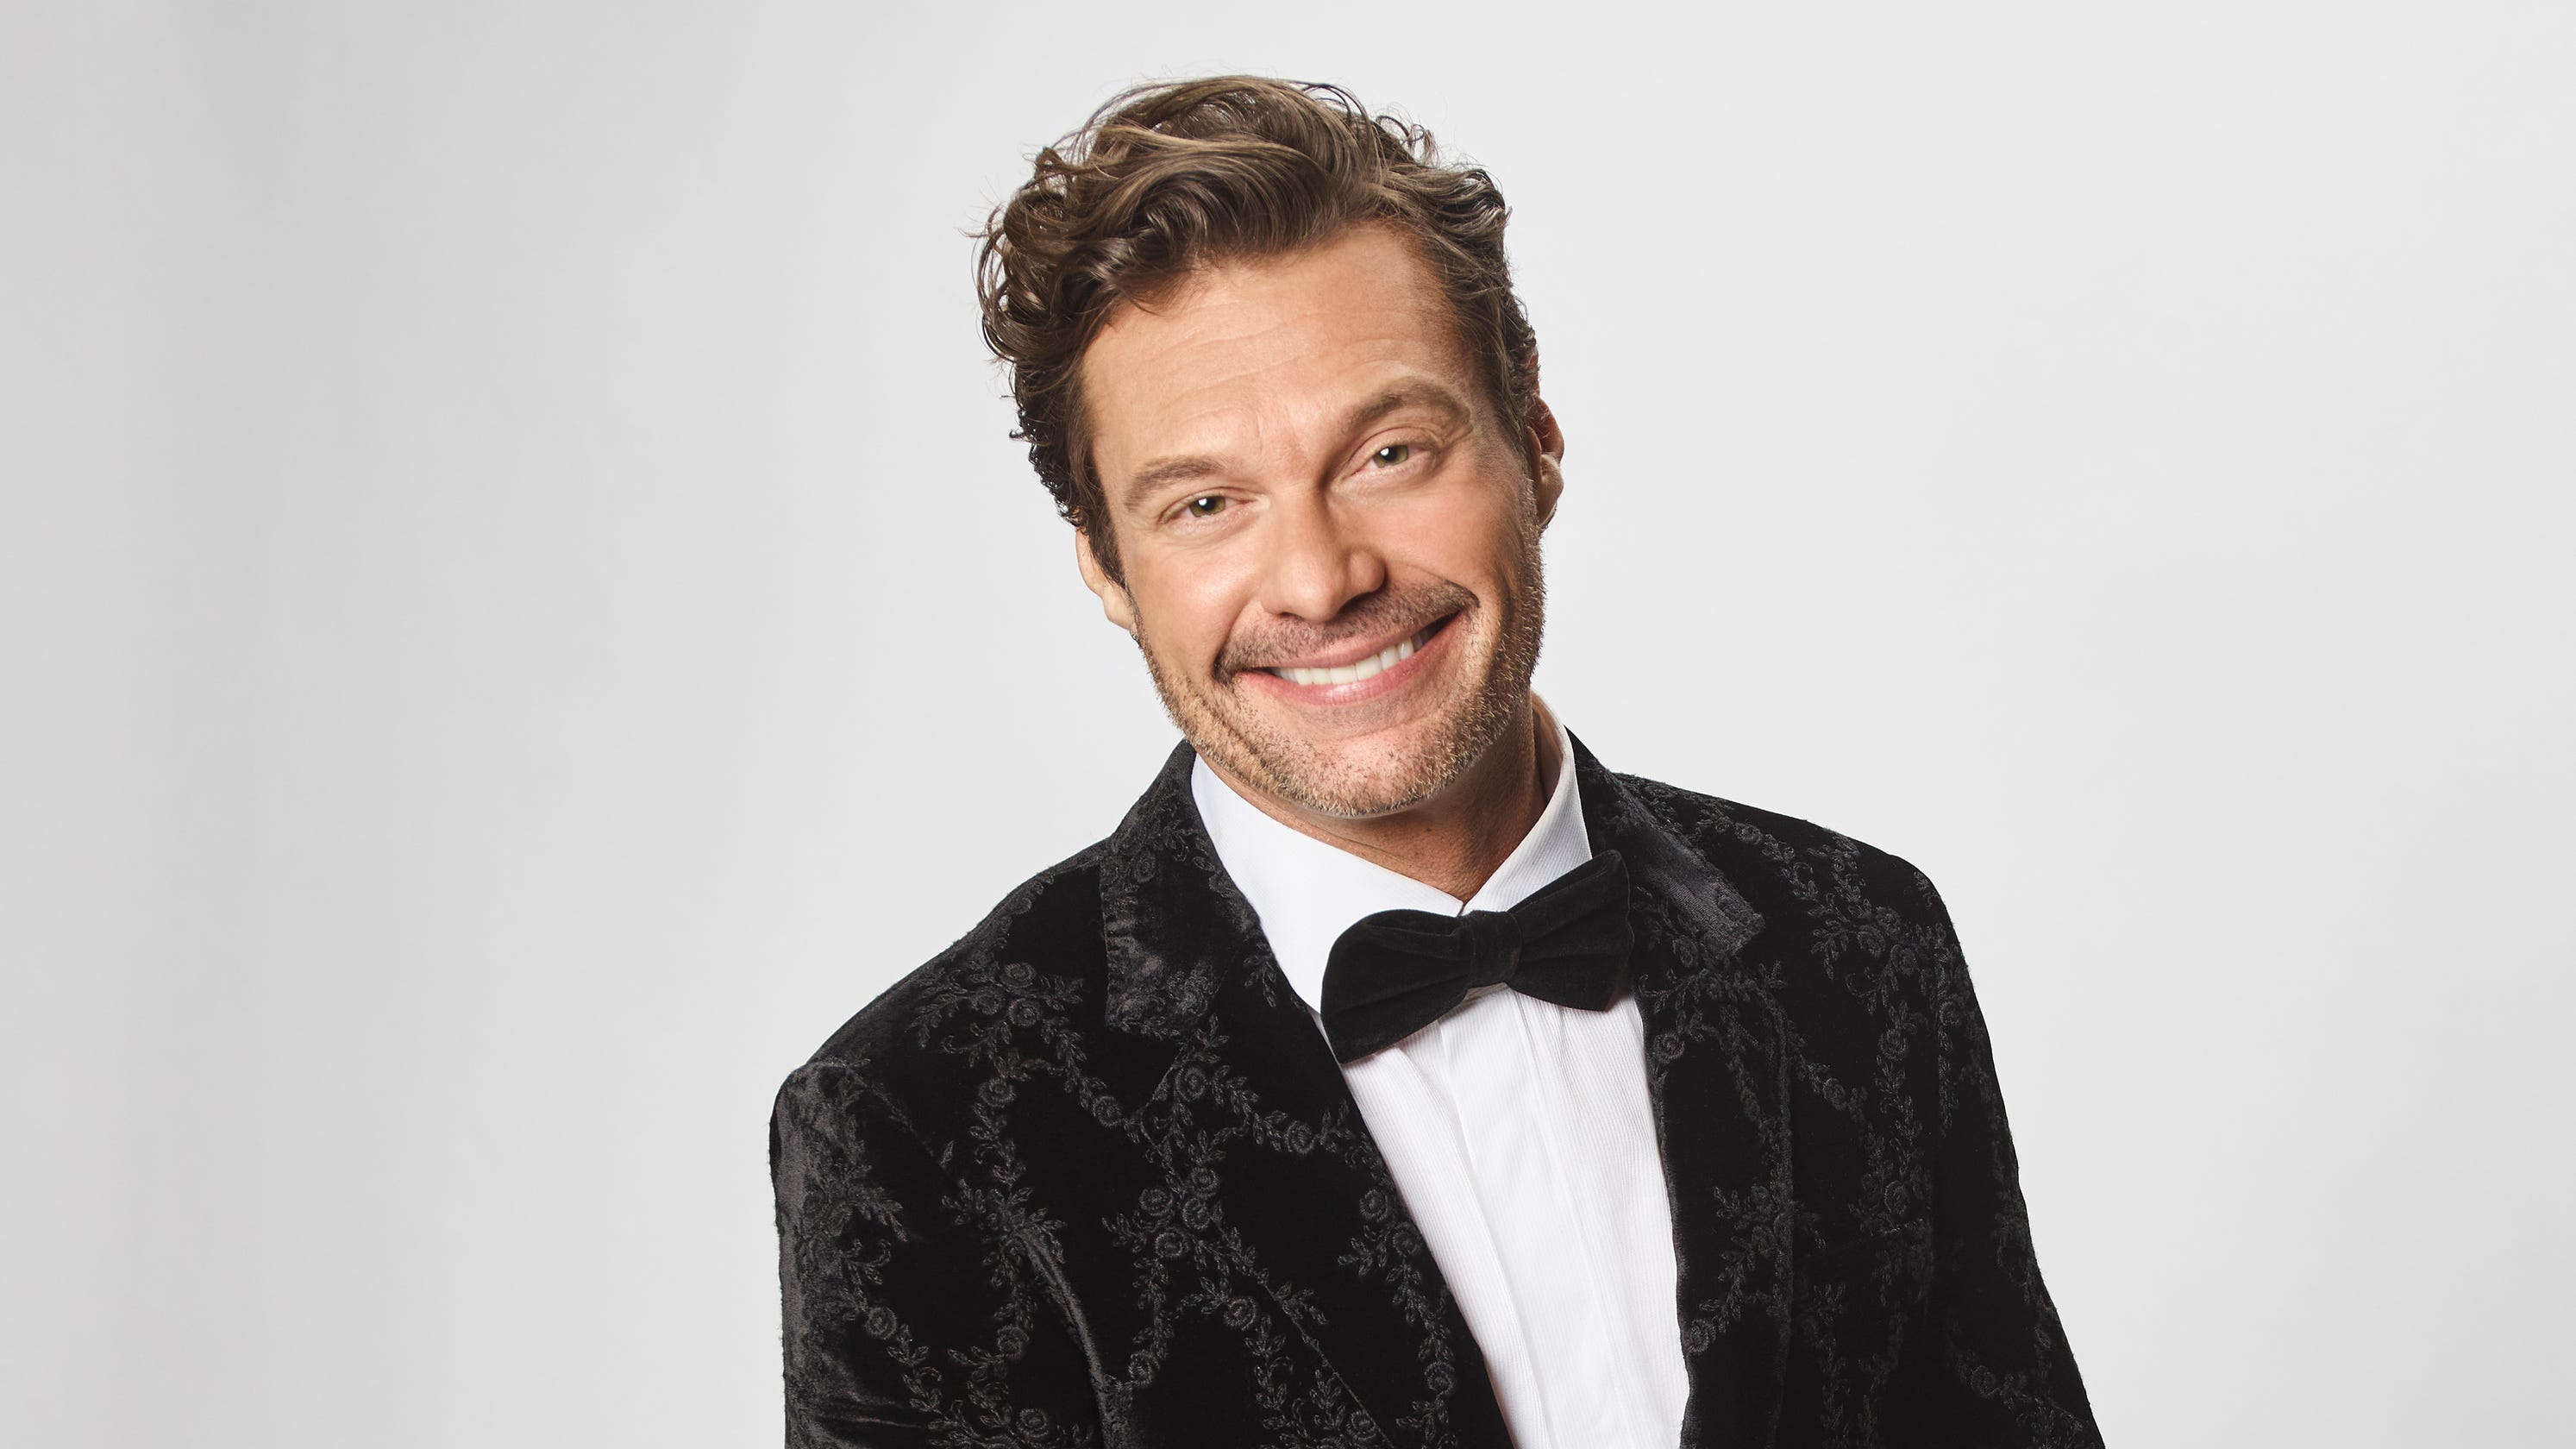 After 14 years with the stars, Ryan Seacrest steps away from co-hosting 'E!'s Live from the Red Carpet' - USA TODAY